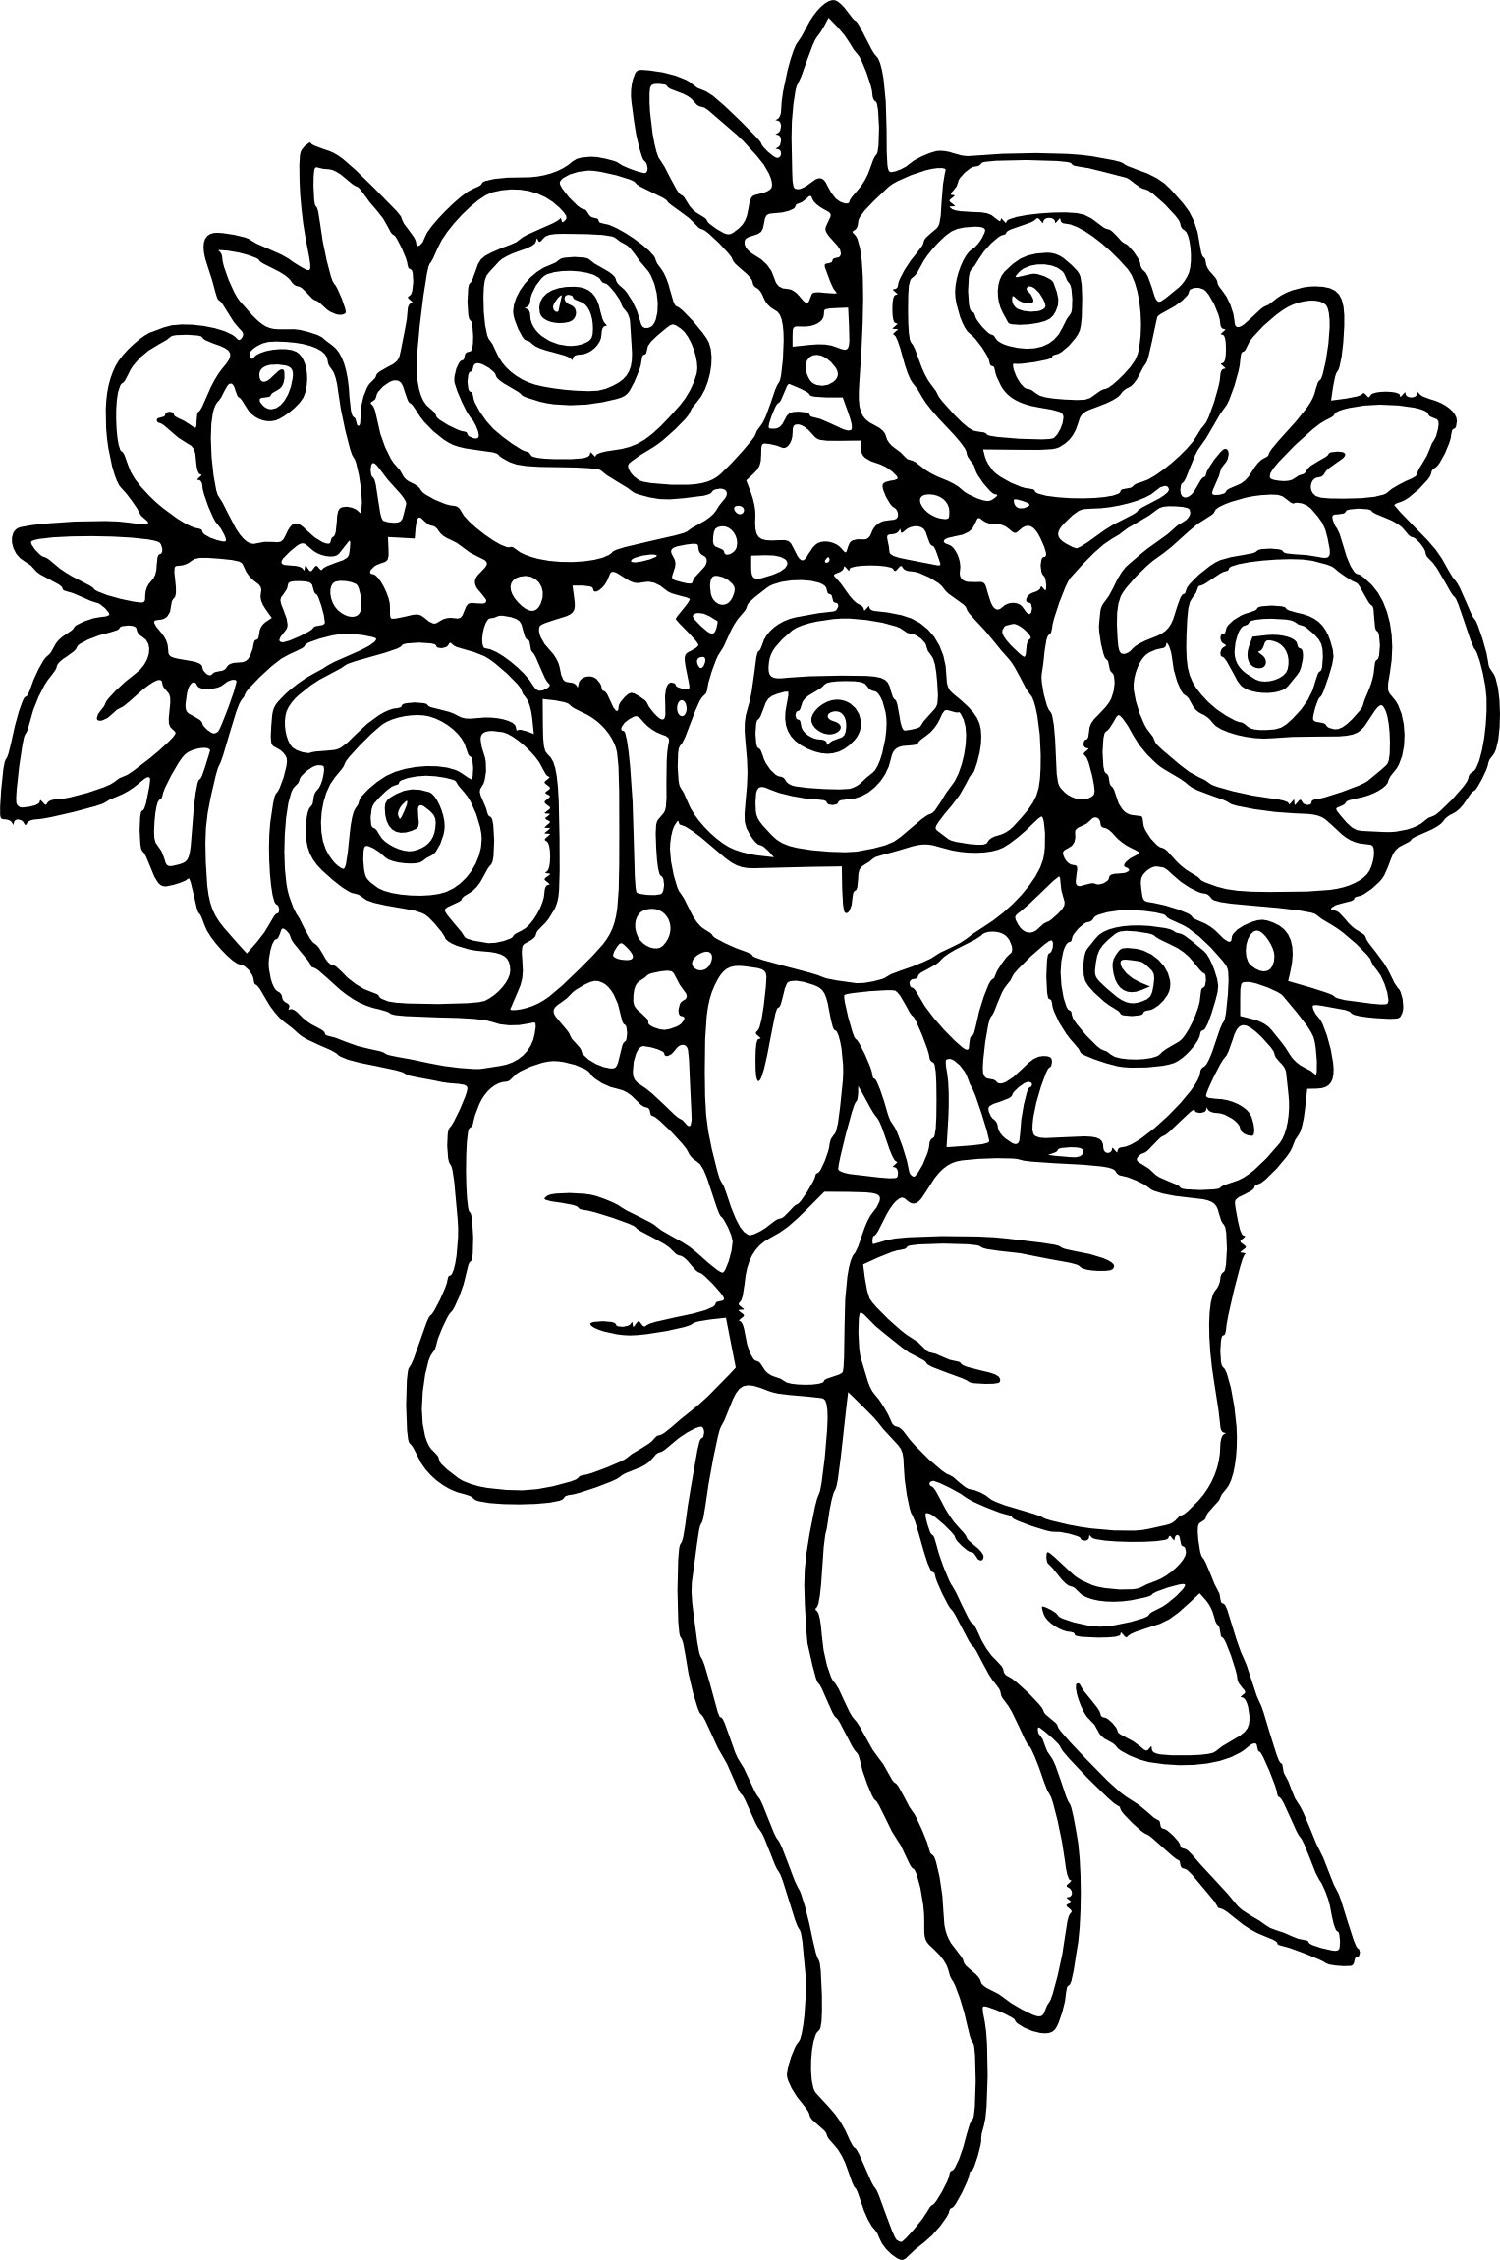 roses coloring pages printable rose coloring pages realistic 101 coloring coloring pages roses printable